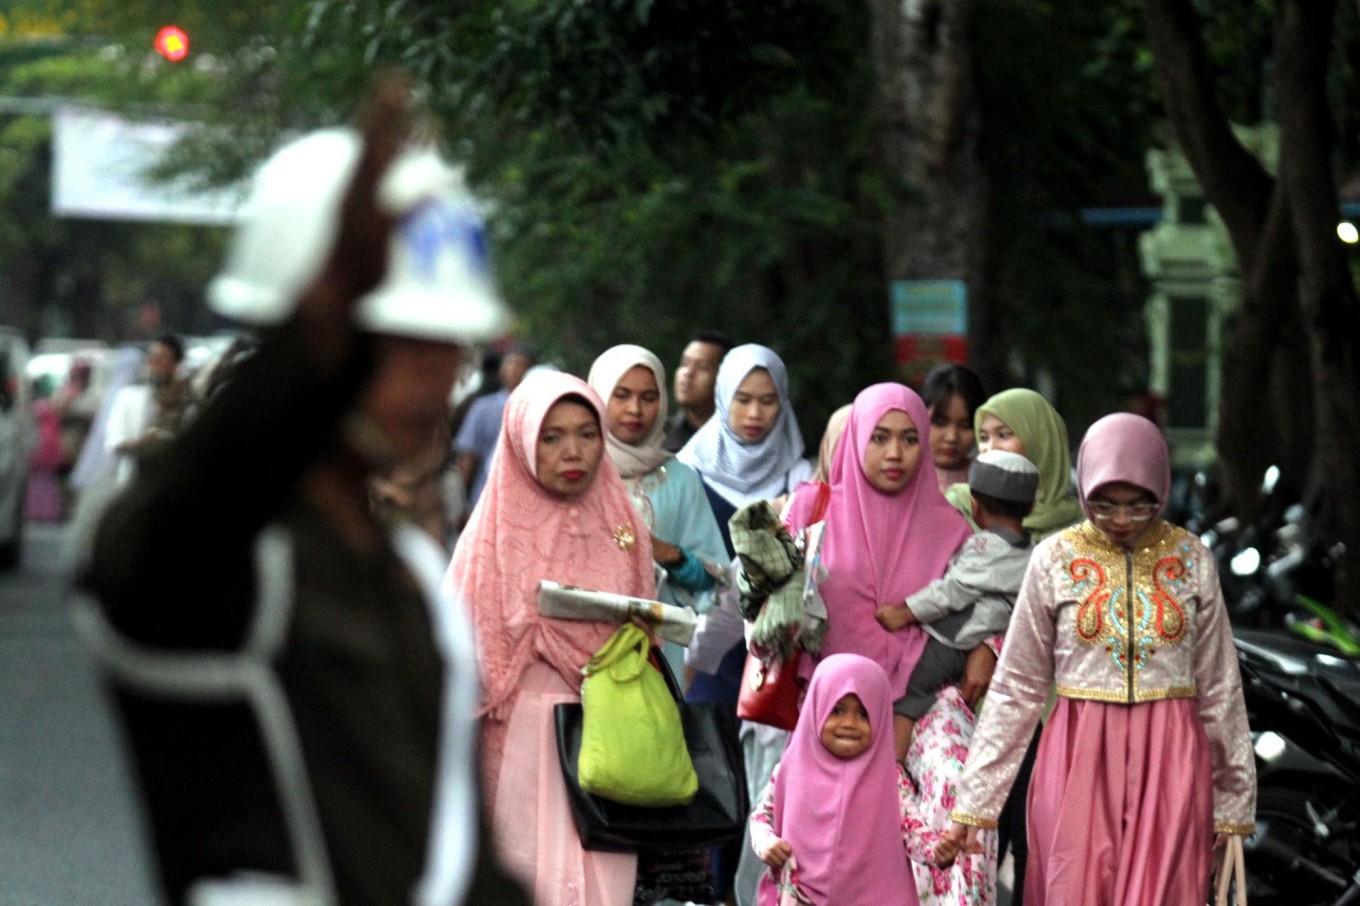 Indonesians abroad celebrate lonely Idul Fitri